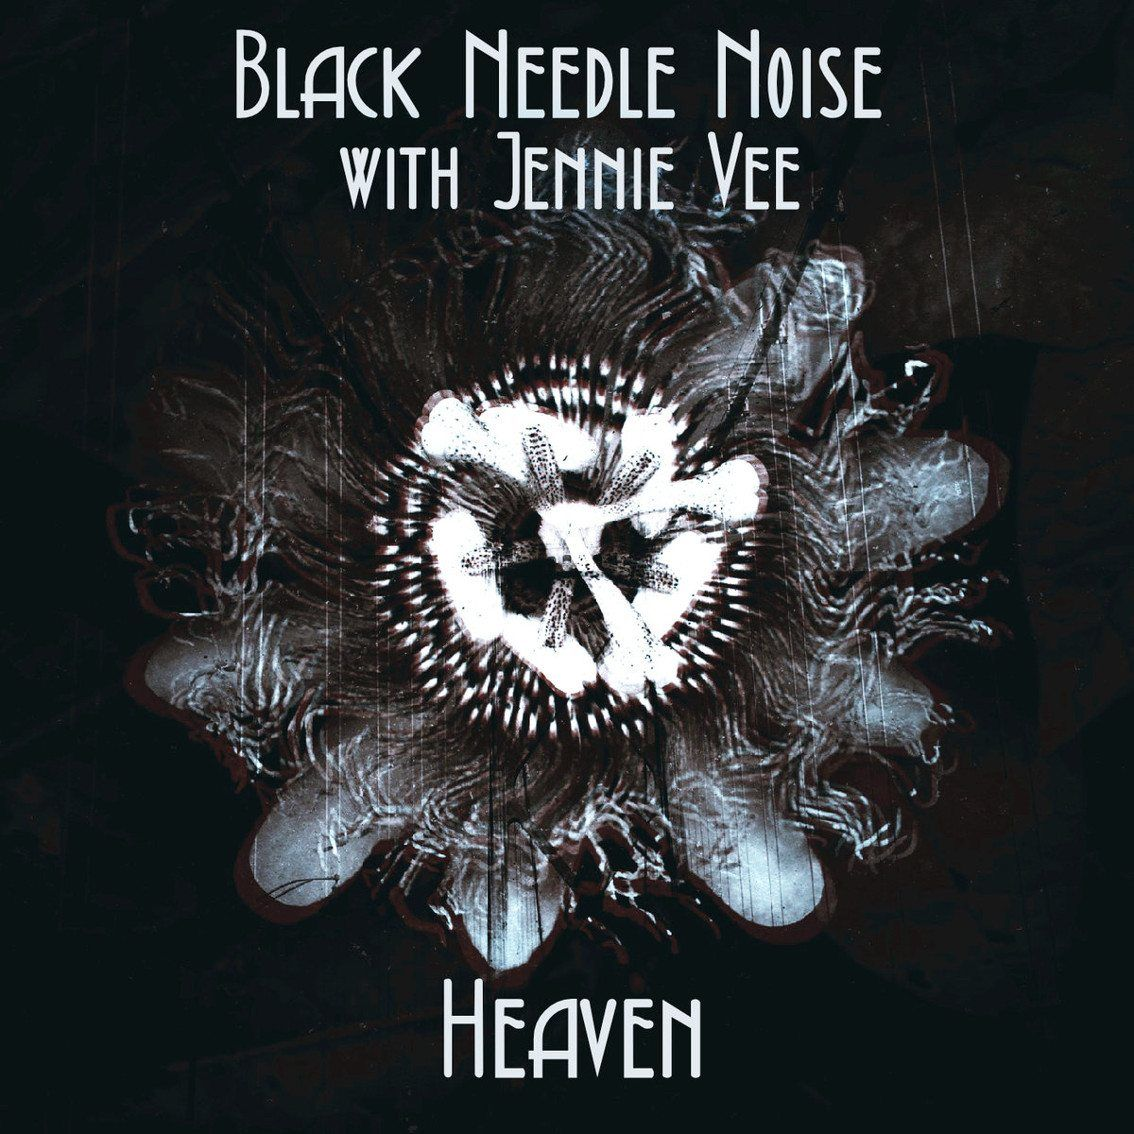 Delcious brand new download for John Fryer powered project Black Needle Noise with Jennie Vee - listen here